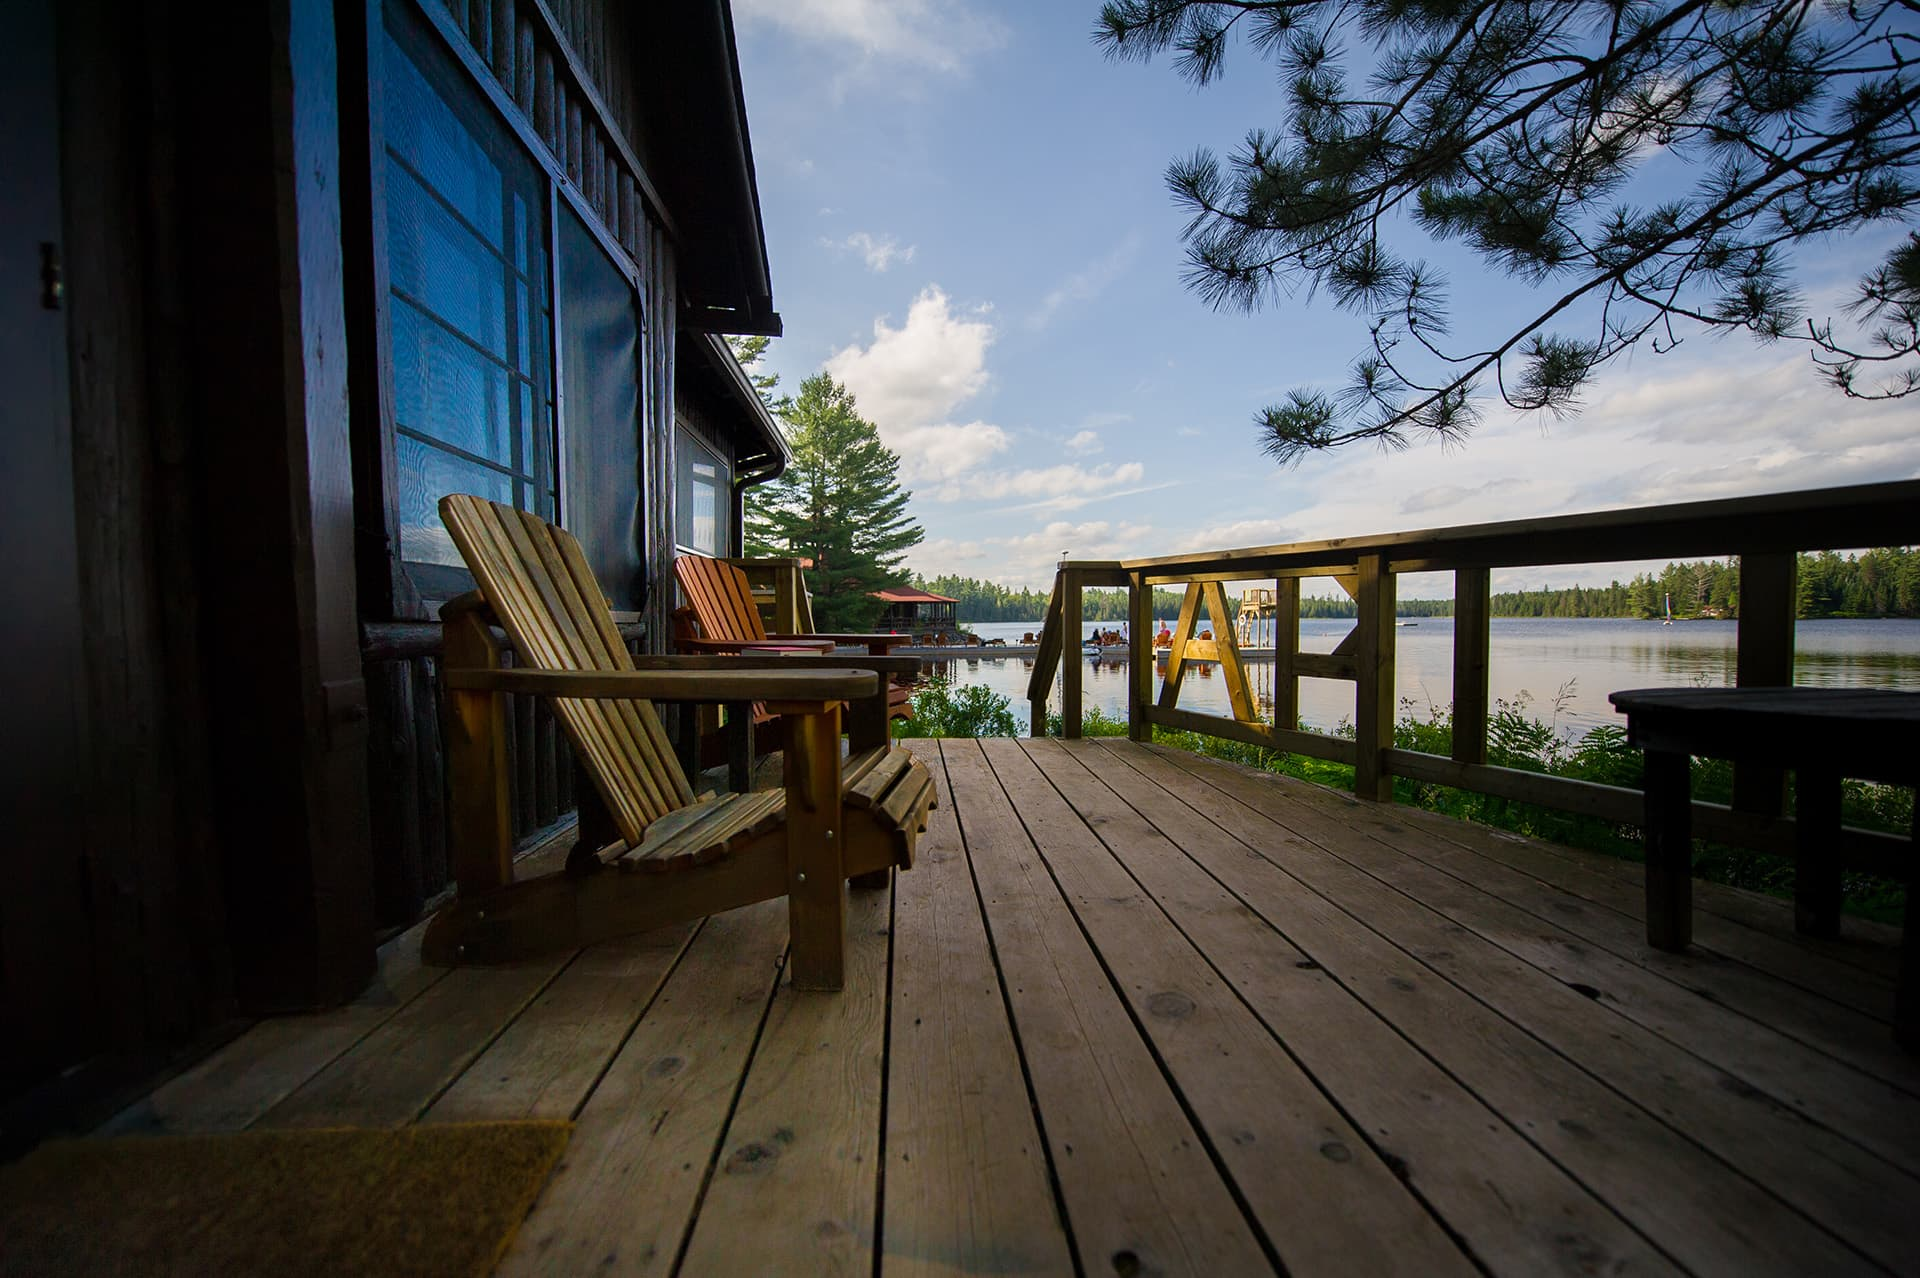 High risk home insurance for cottage next to a lake with a porch and Muskoka chairs